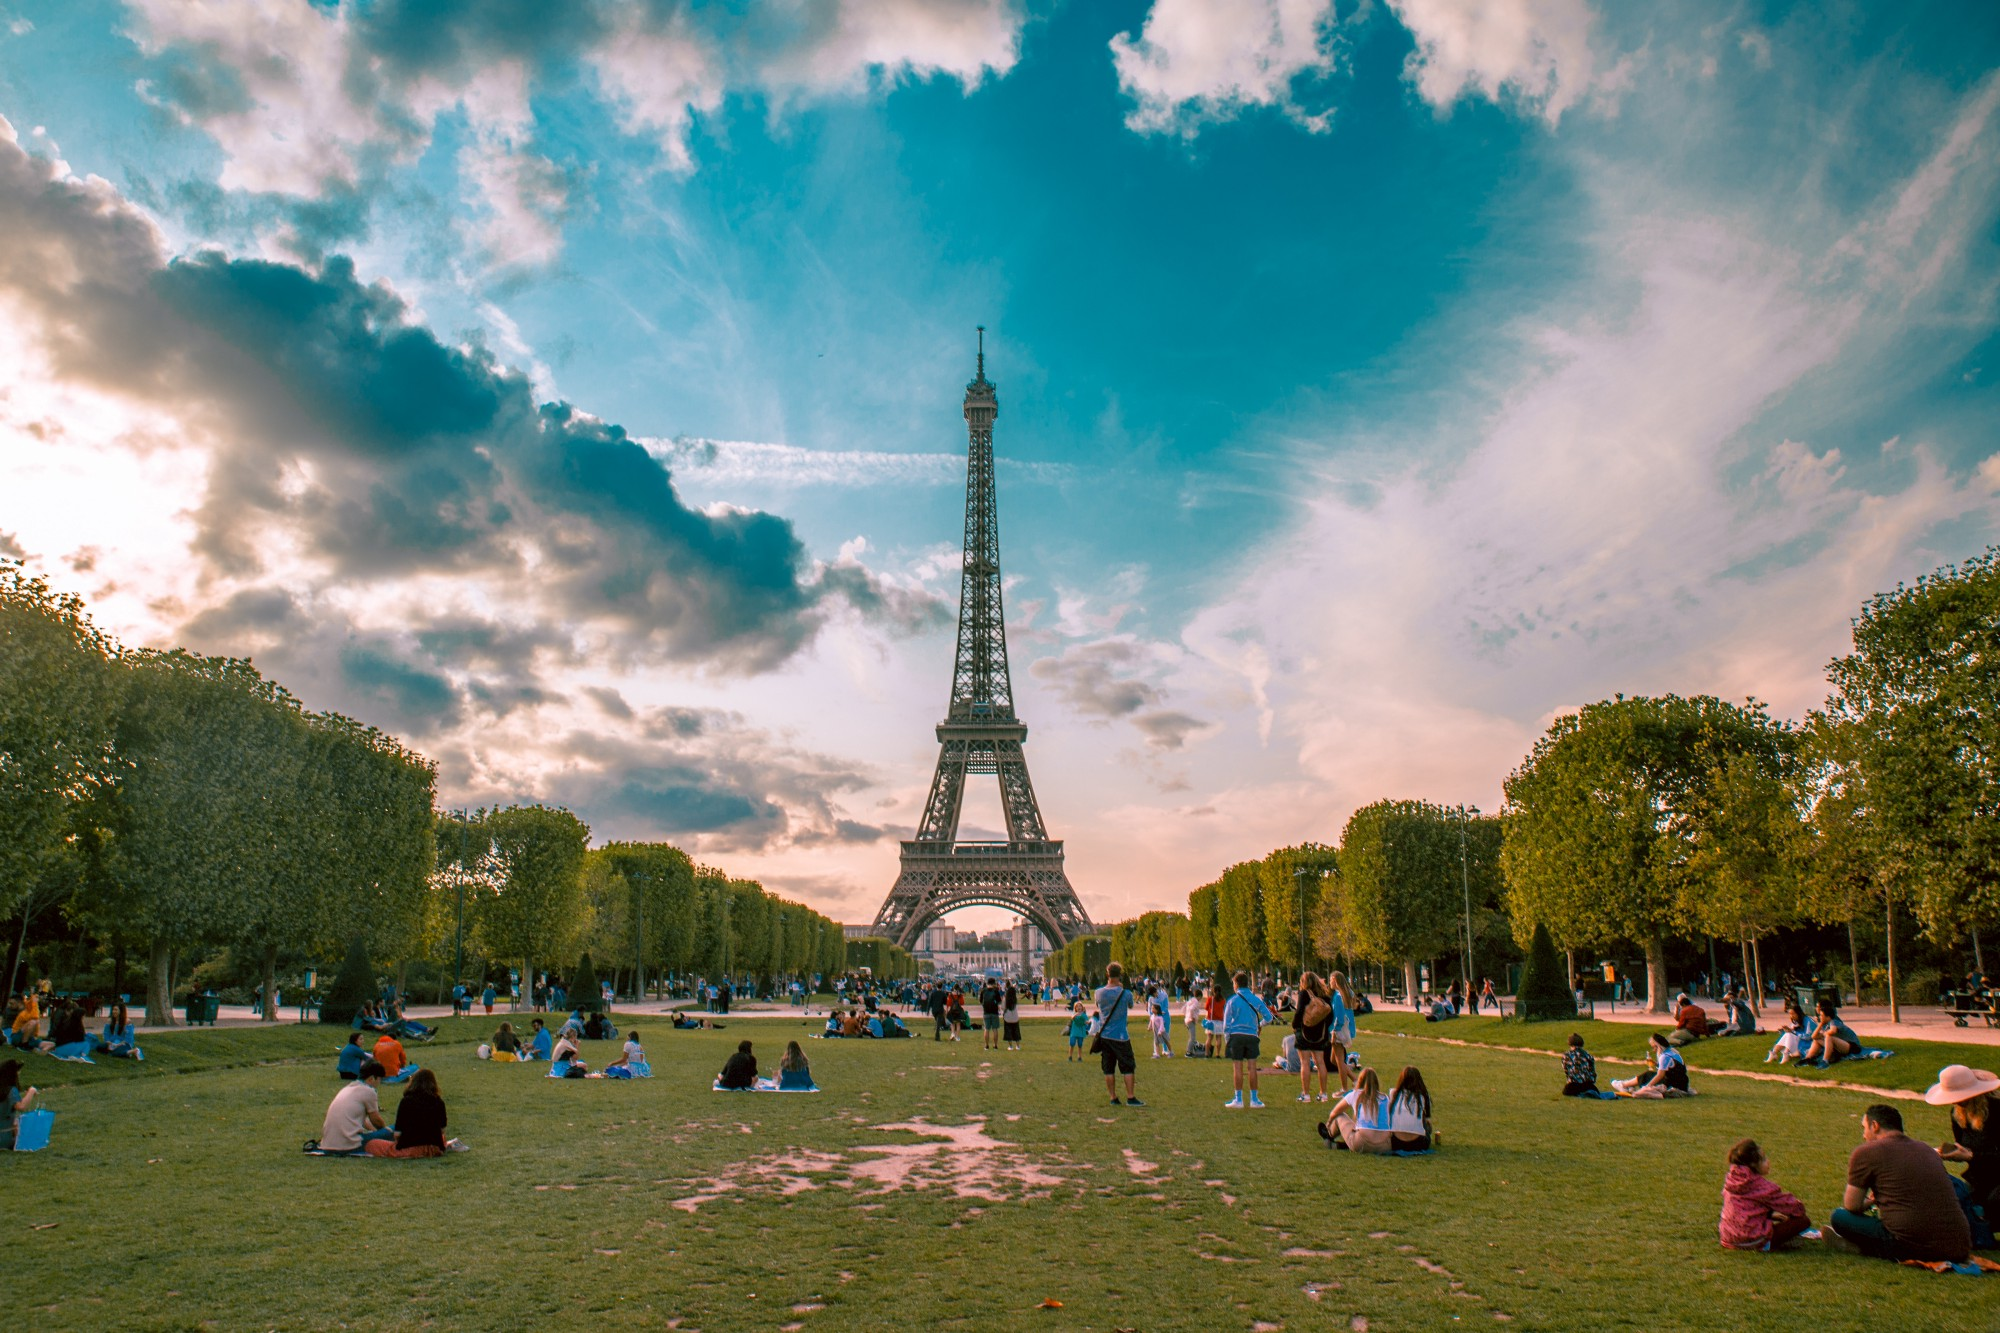 A lively park in front of the Eiffel tower